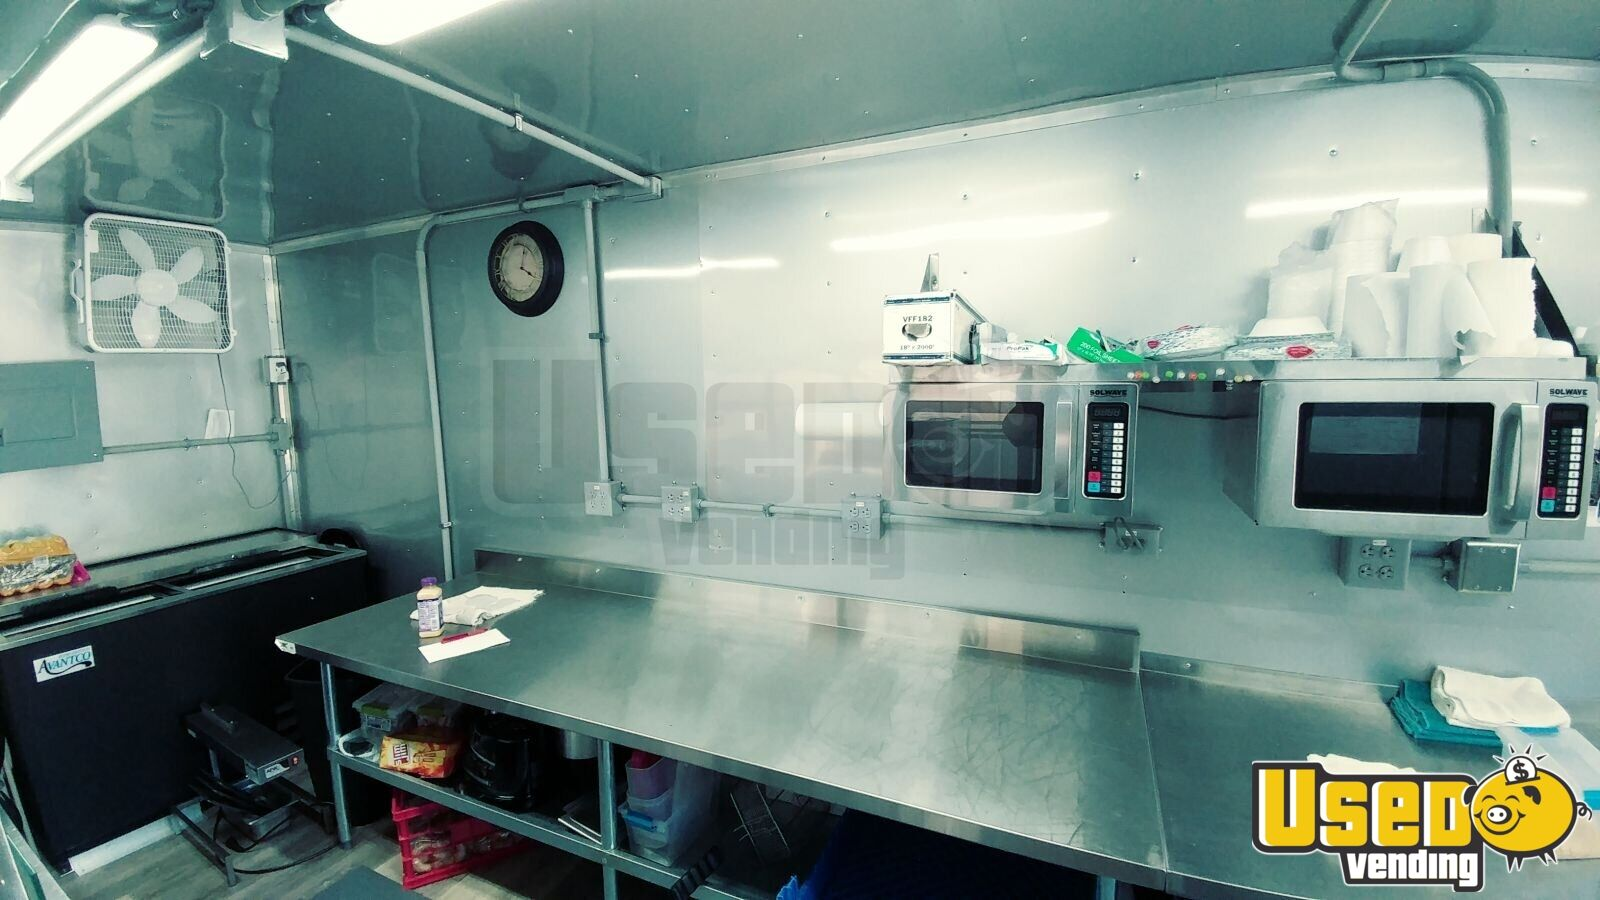 2017 Freedom Trailer All-purpose Food Trailer Microwave Maryland for Sale - 14